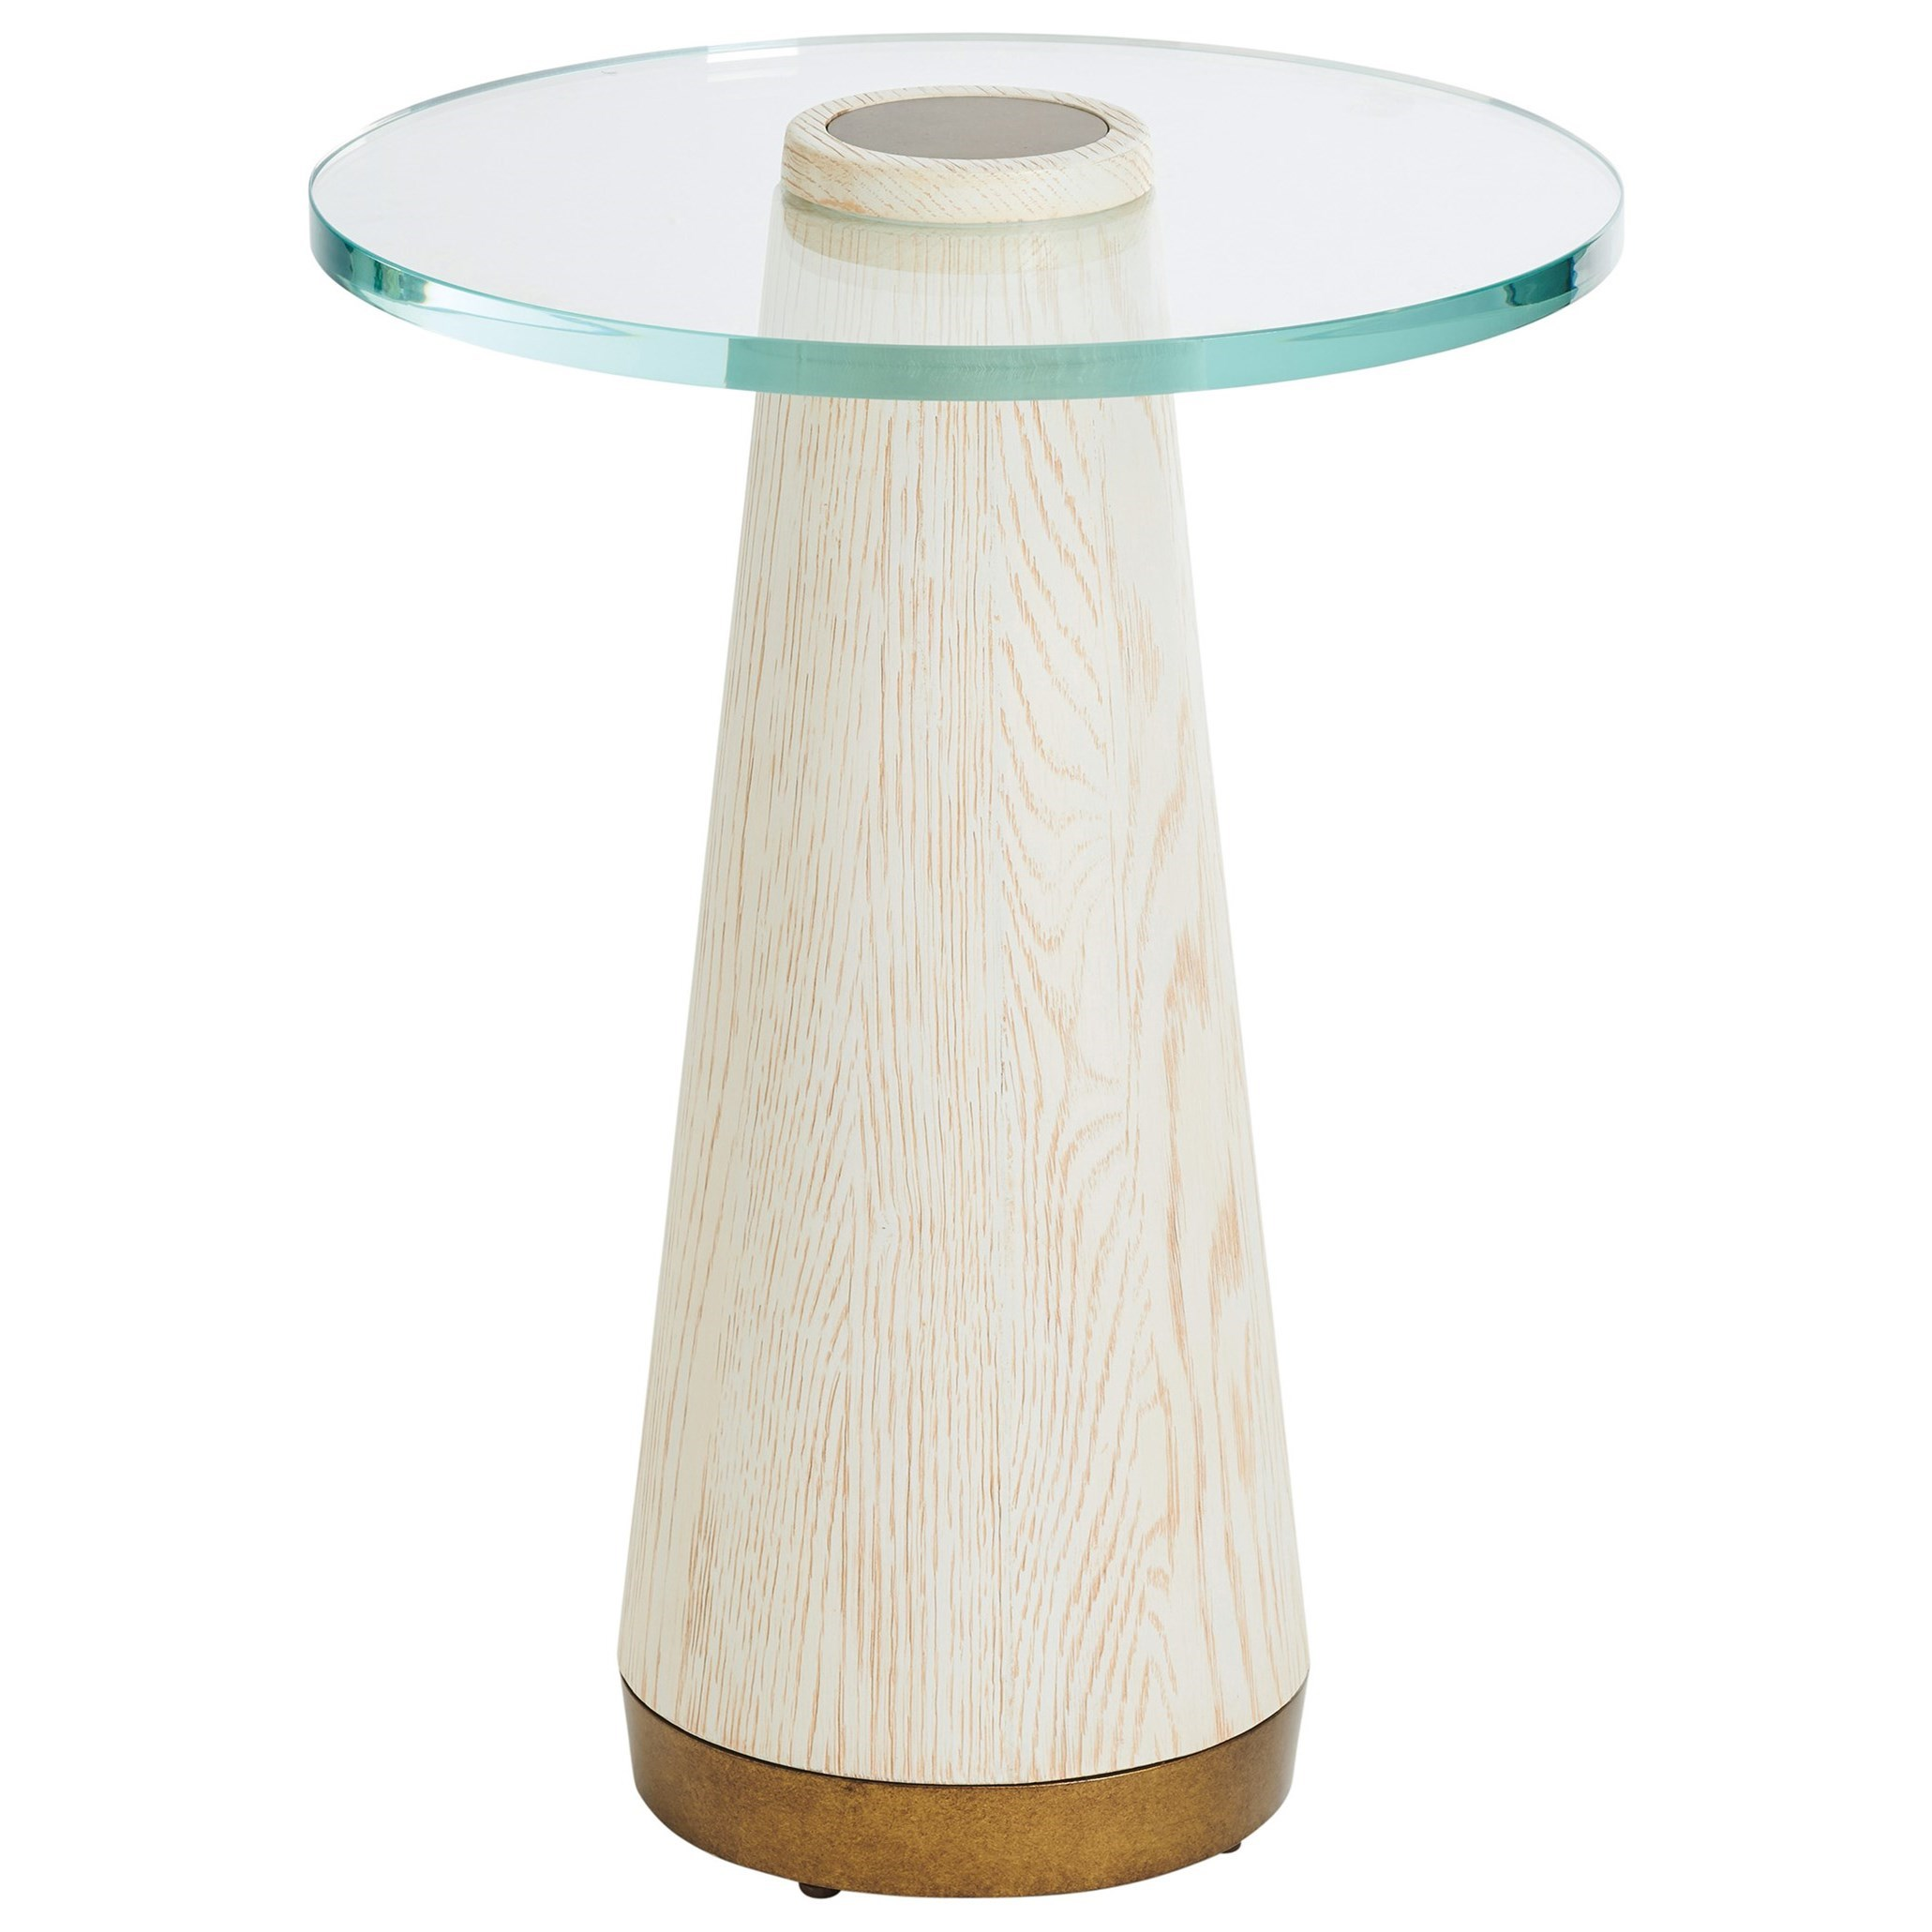 Carmel Castlewood Glass Top Accent Table by Barclay Butera at Baer's Furniture